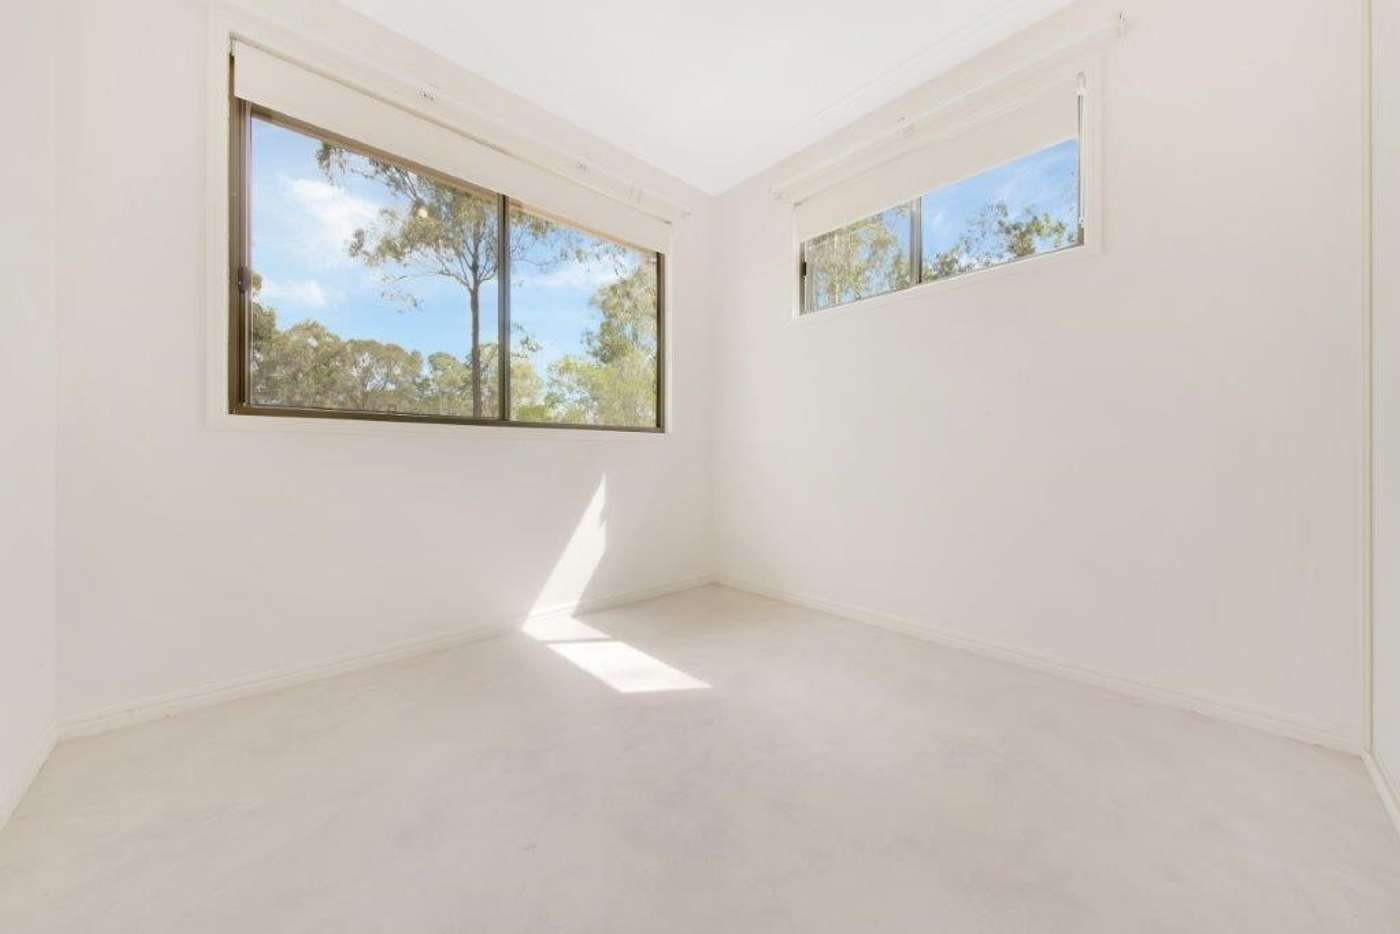 Sixth view of Homely house listing, 9 Lister Street, Apple Tree Creek QLD 4660